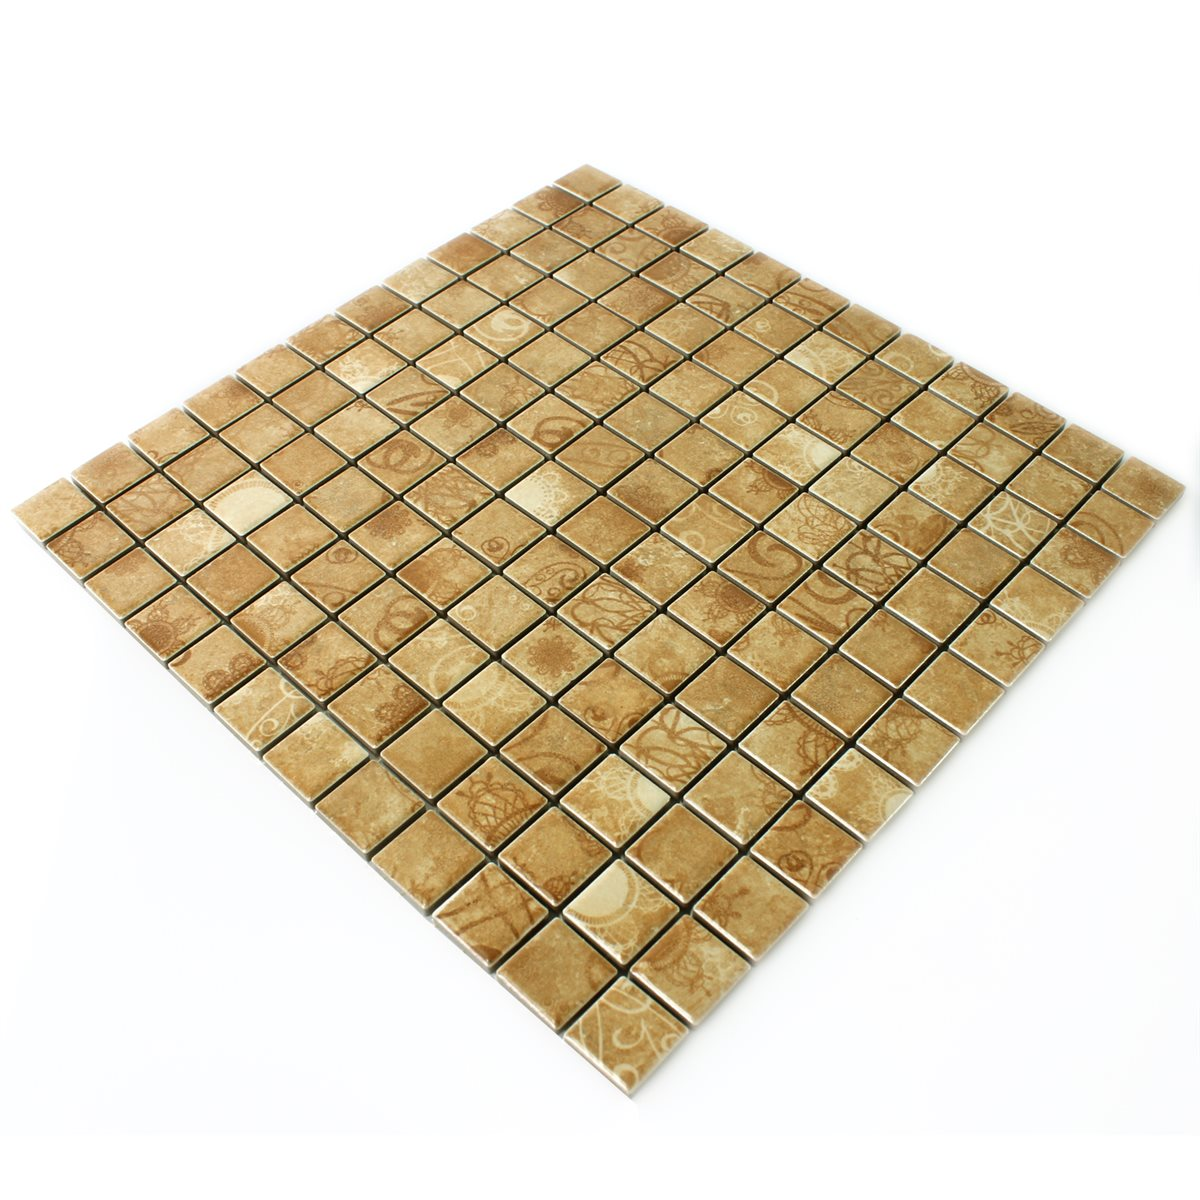 Ceramic Mosaic Tiles Laceo Beige Tm33351